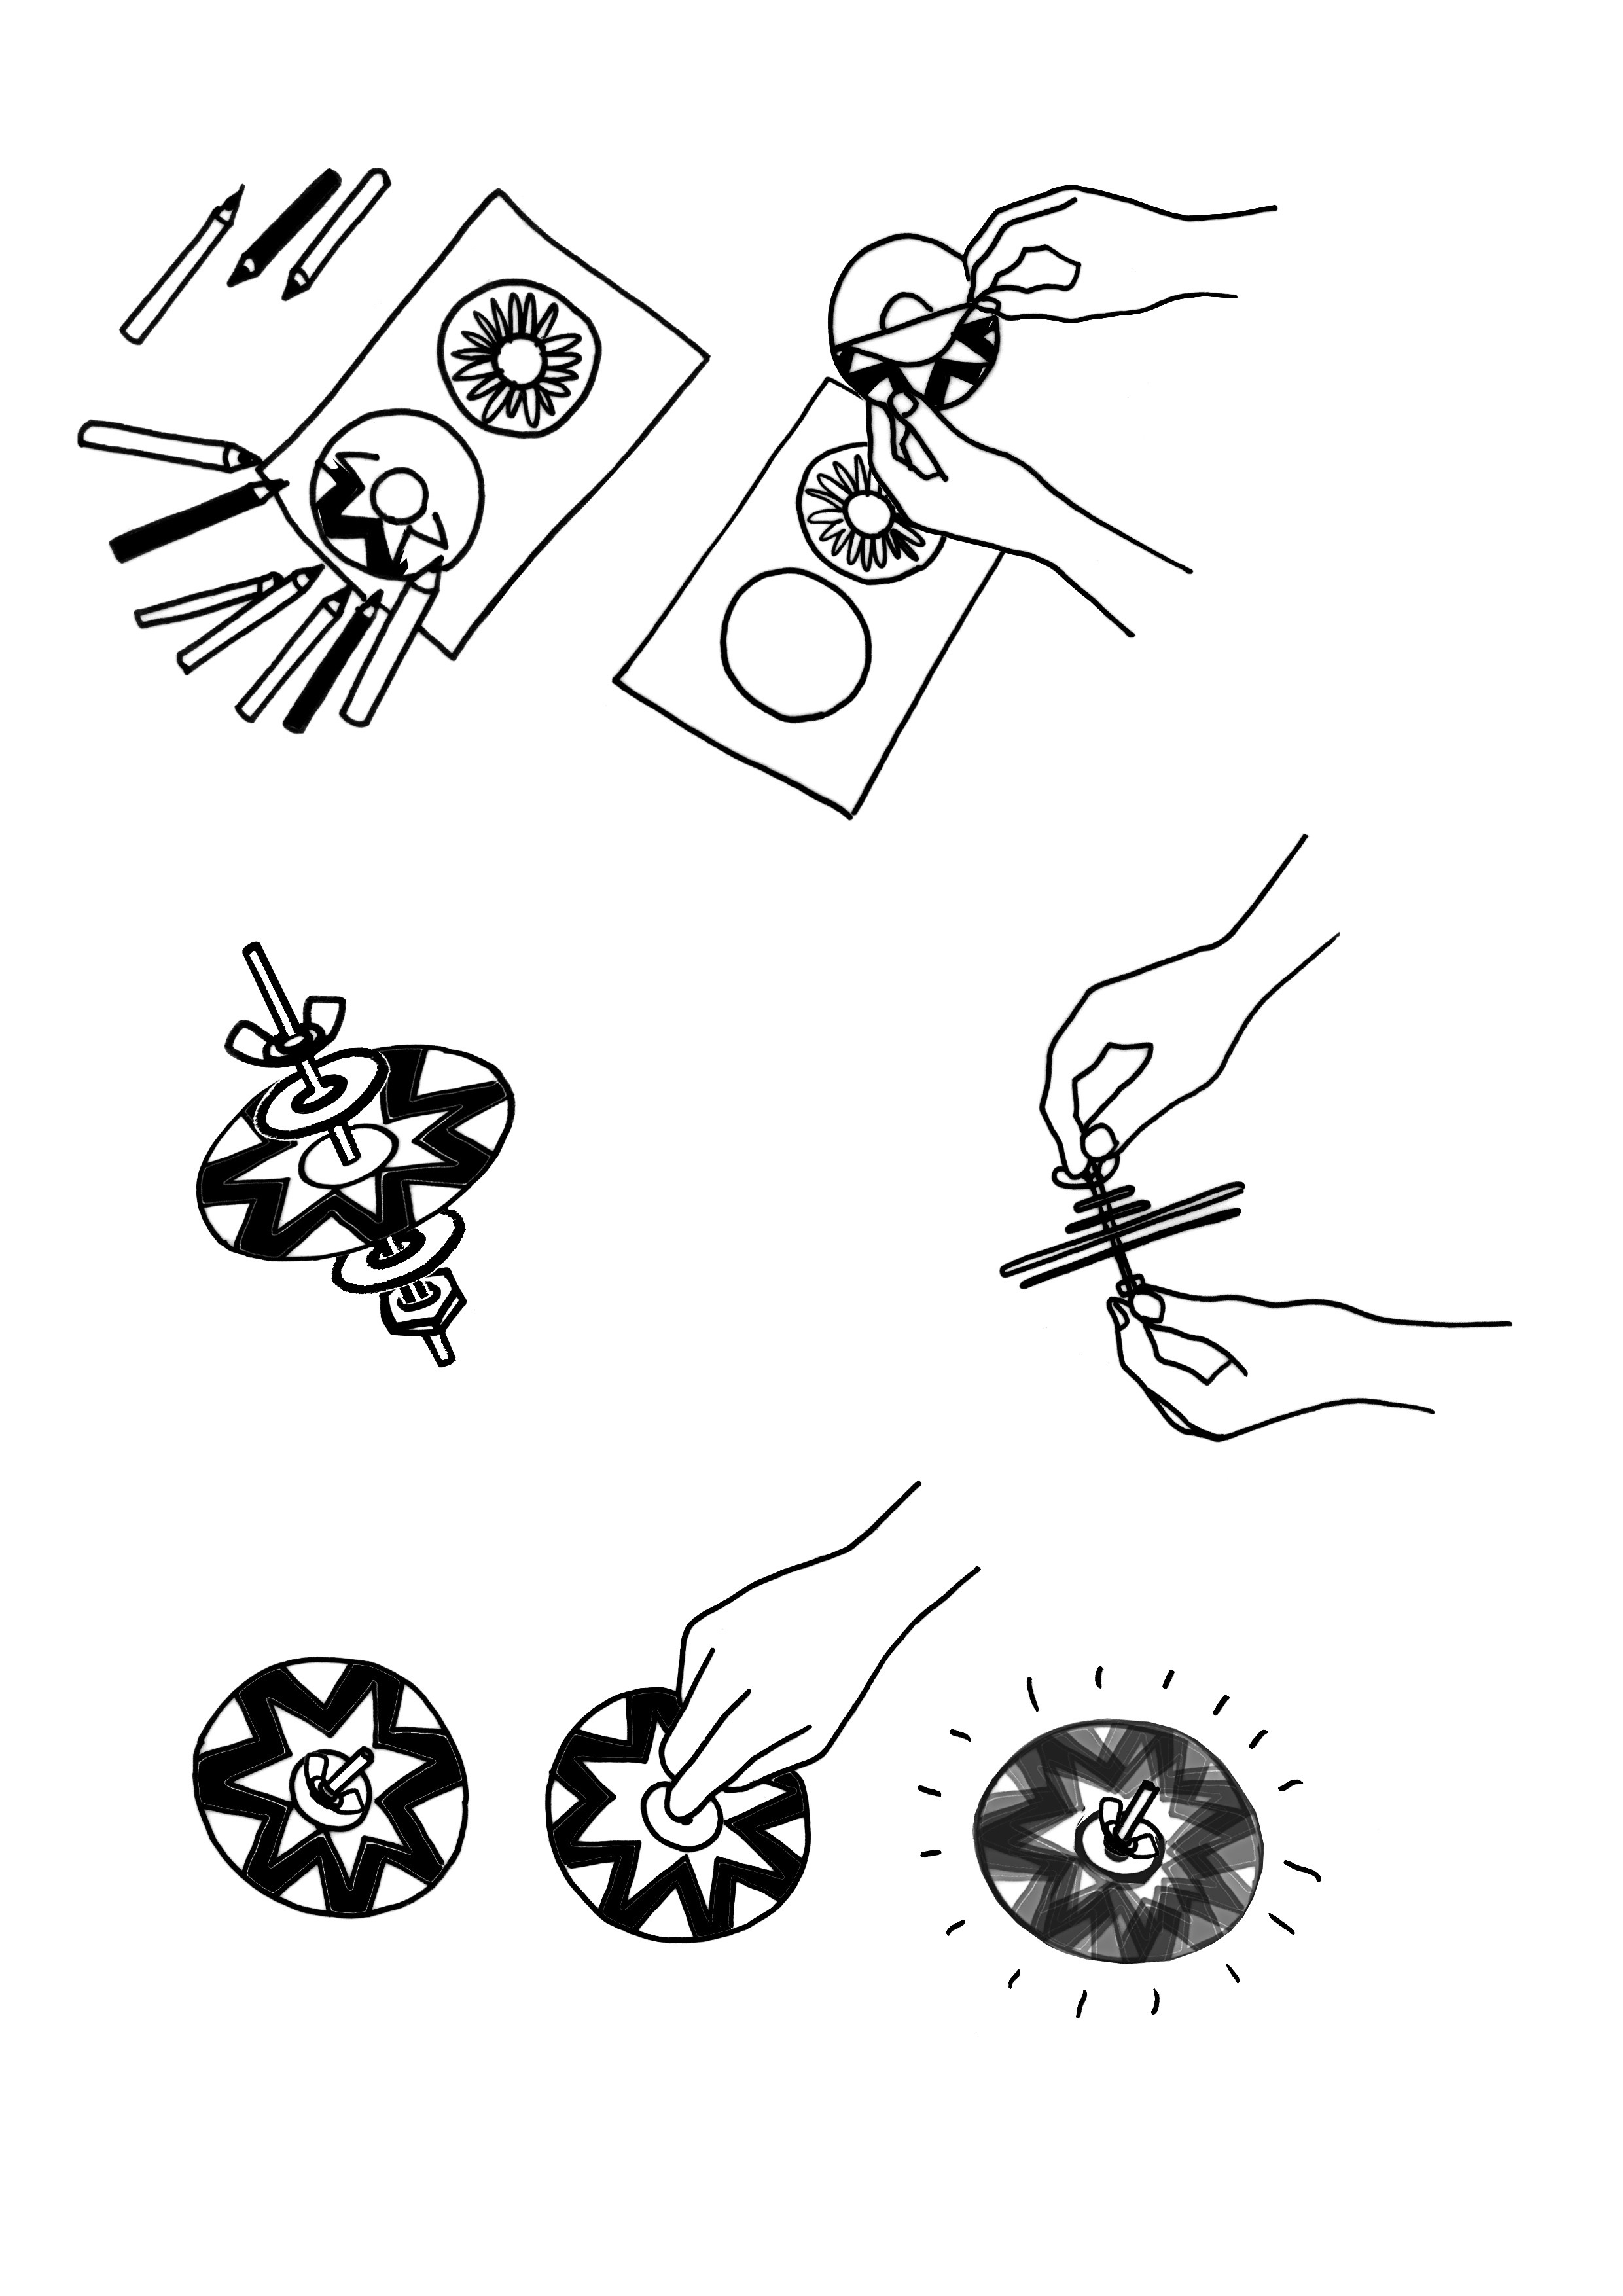 CD Spinner sketches